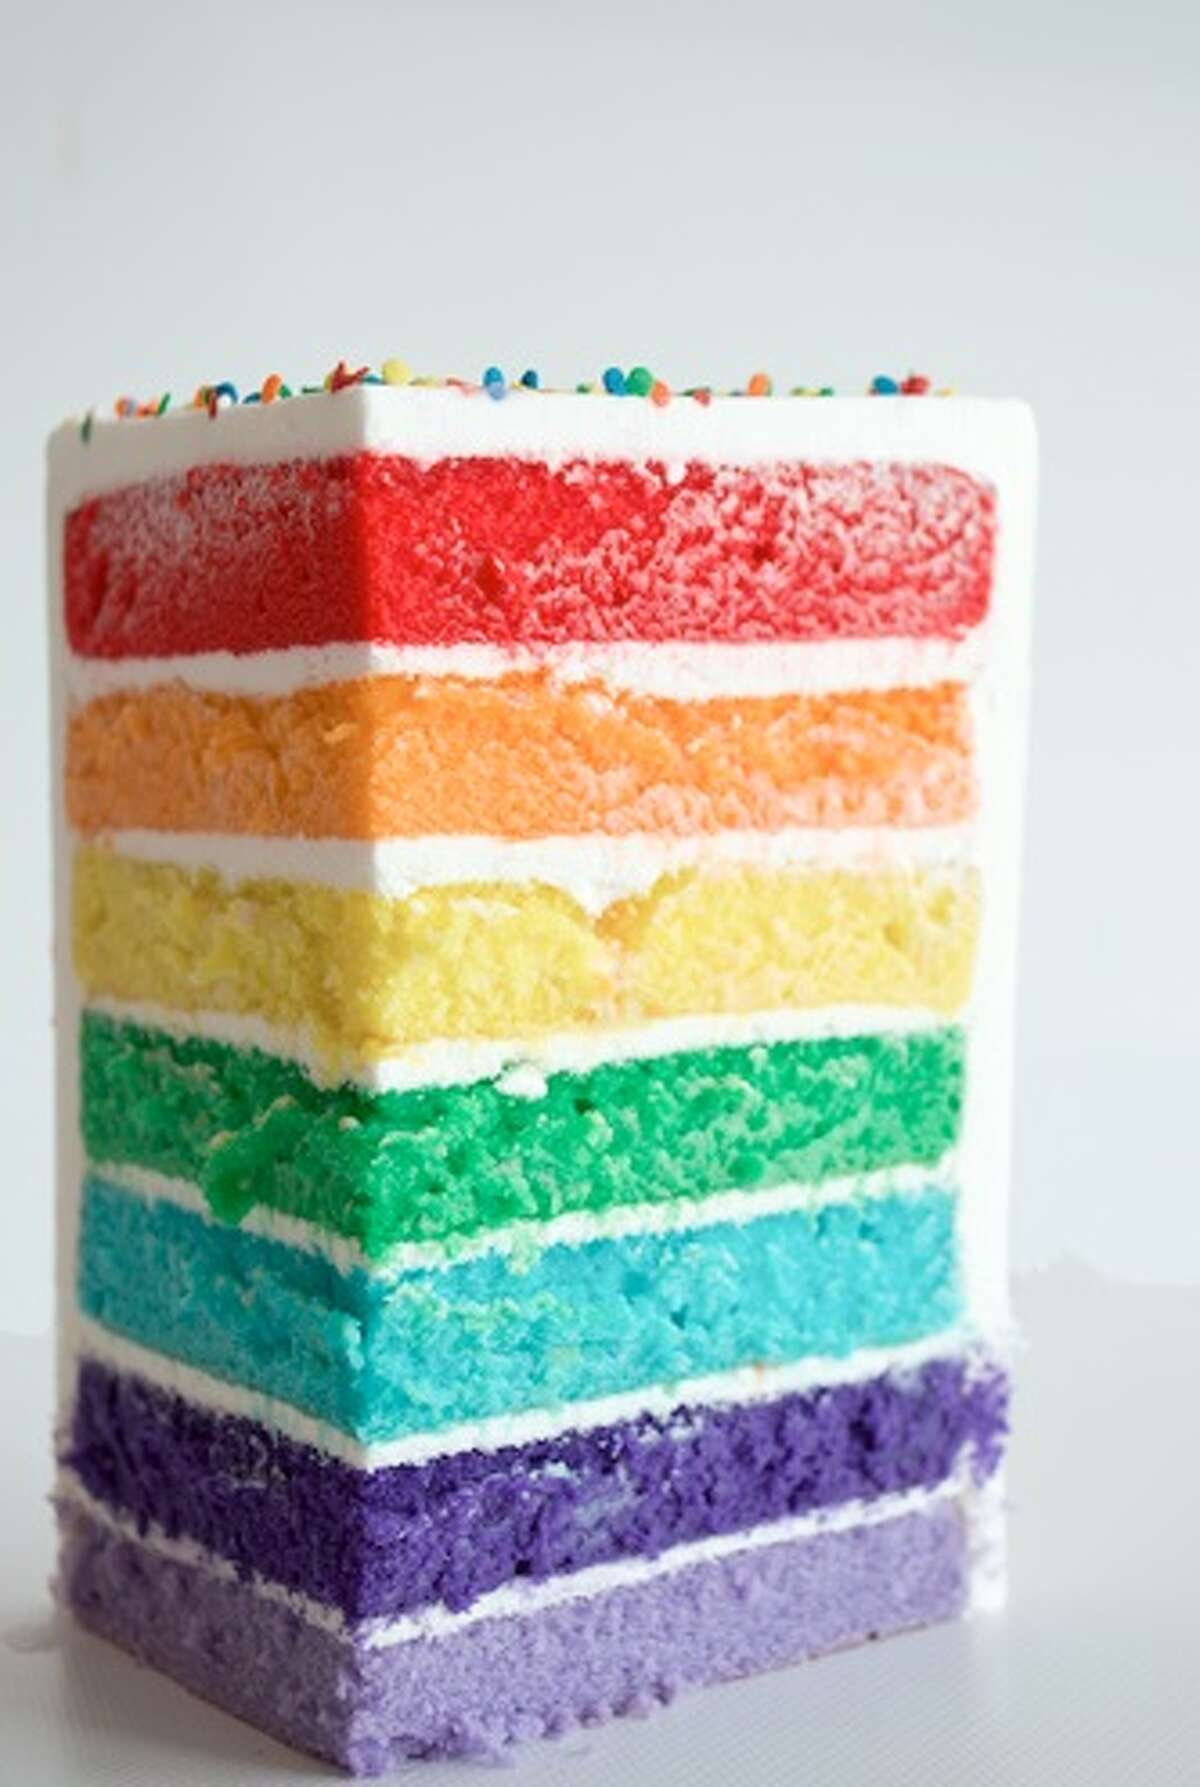 Three Brothers Bakery is offering a seven-layer cake in the colors of the Pride flag for Gay Pride Month, June 2018.